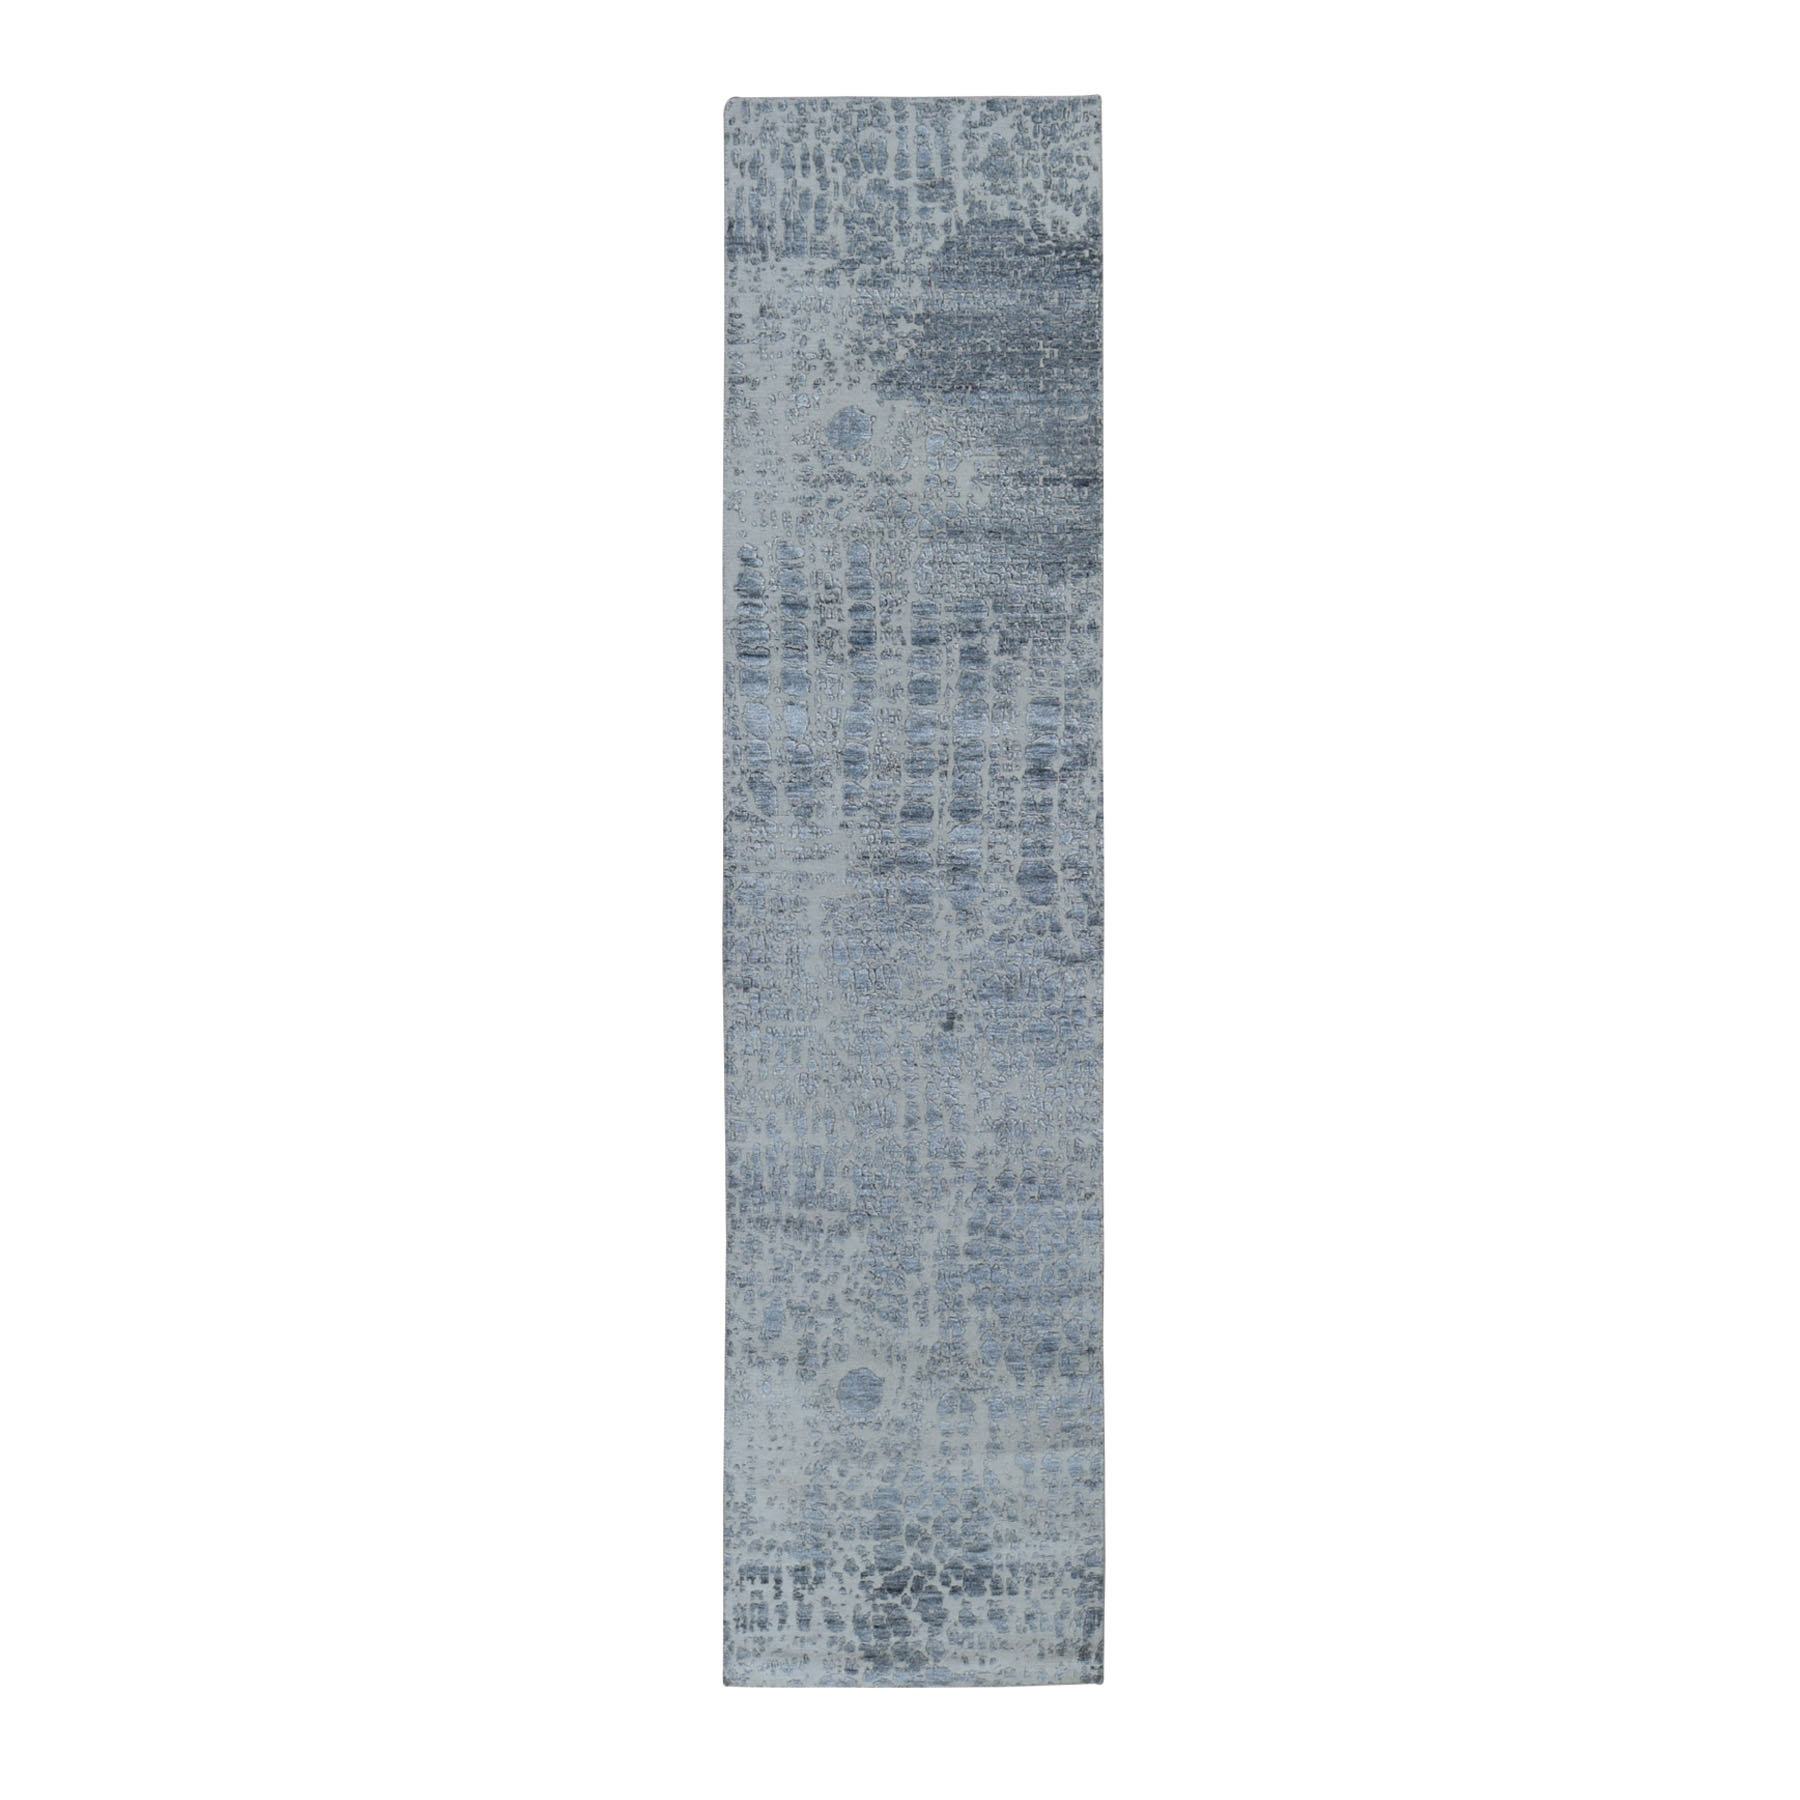 "2'5""x10'1"" Abstract Design Wool And Silk Hi-Low Pile Denser Weave Runner Hand Woven Oriental Rug"